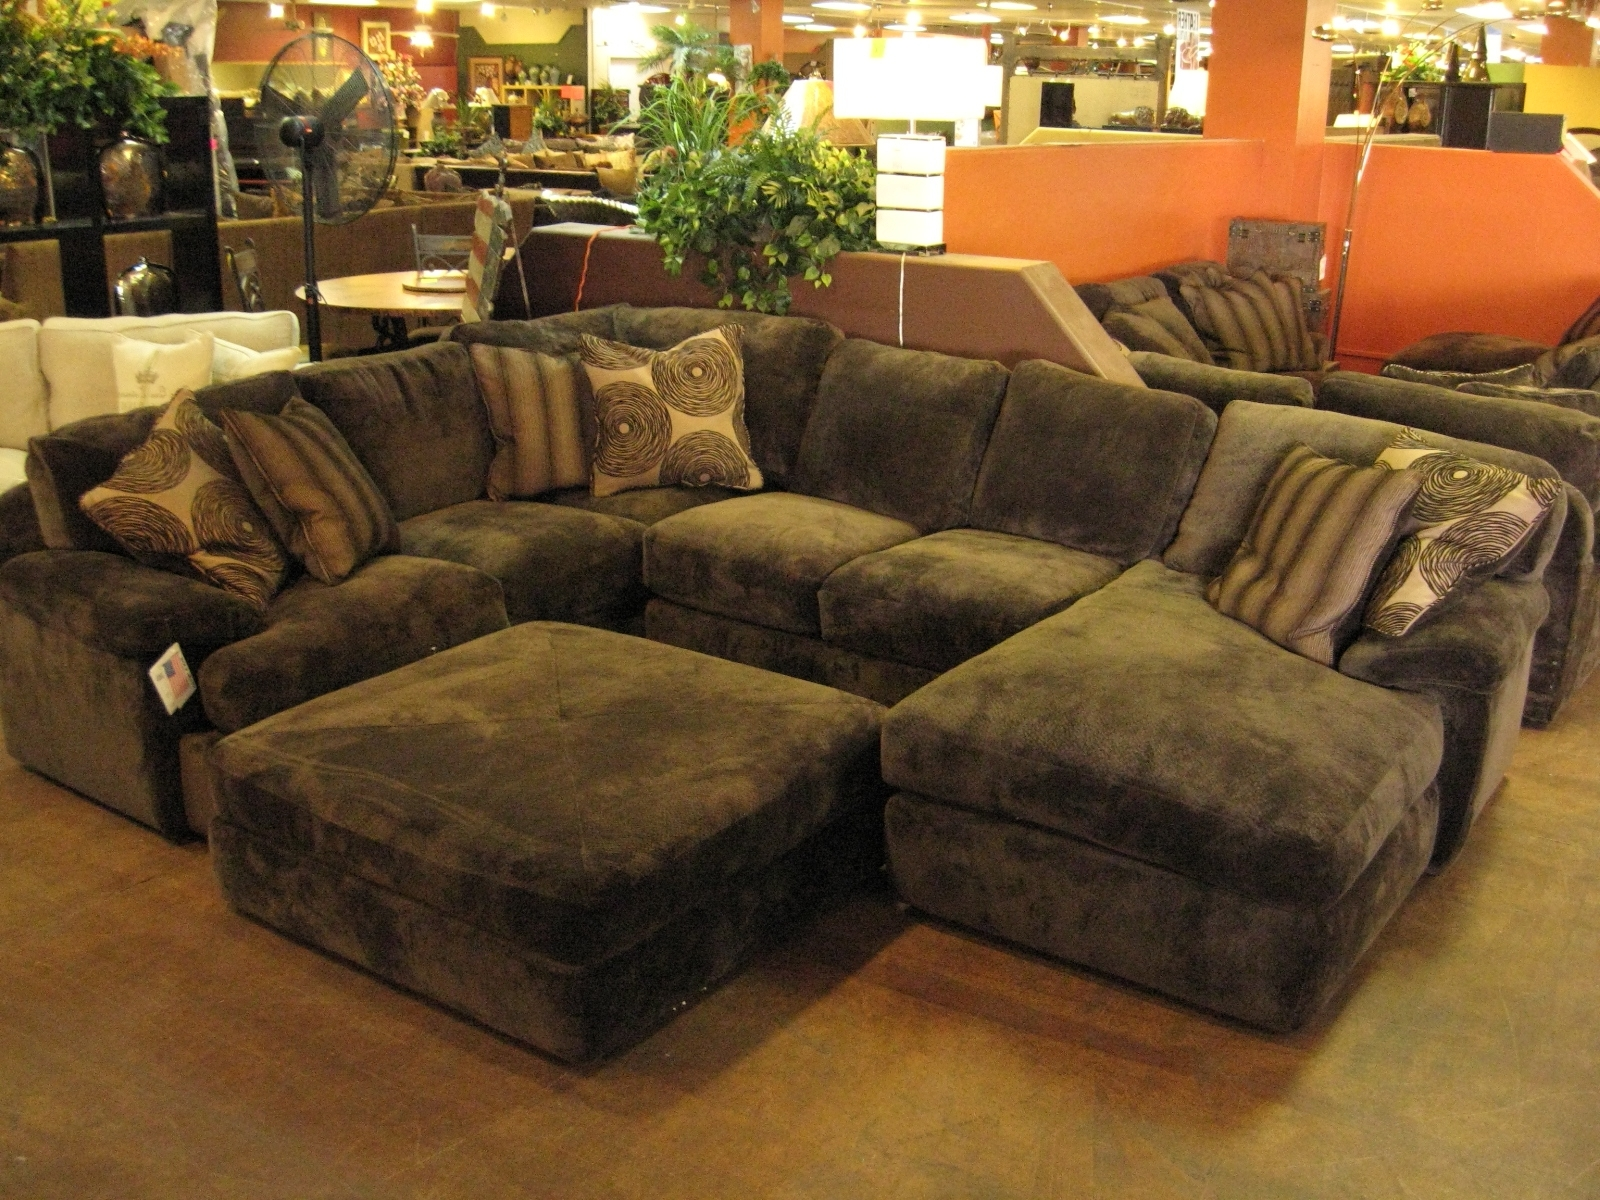 Seattle Sectional Sofas With Regard To Latest Deep Sectional Sofa With Chaise – Cleanupflorida (View 10 of 15)